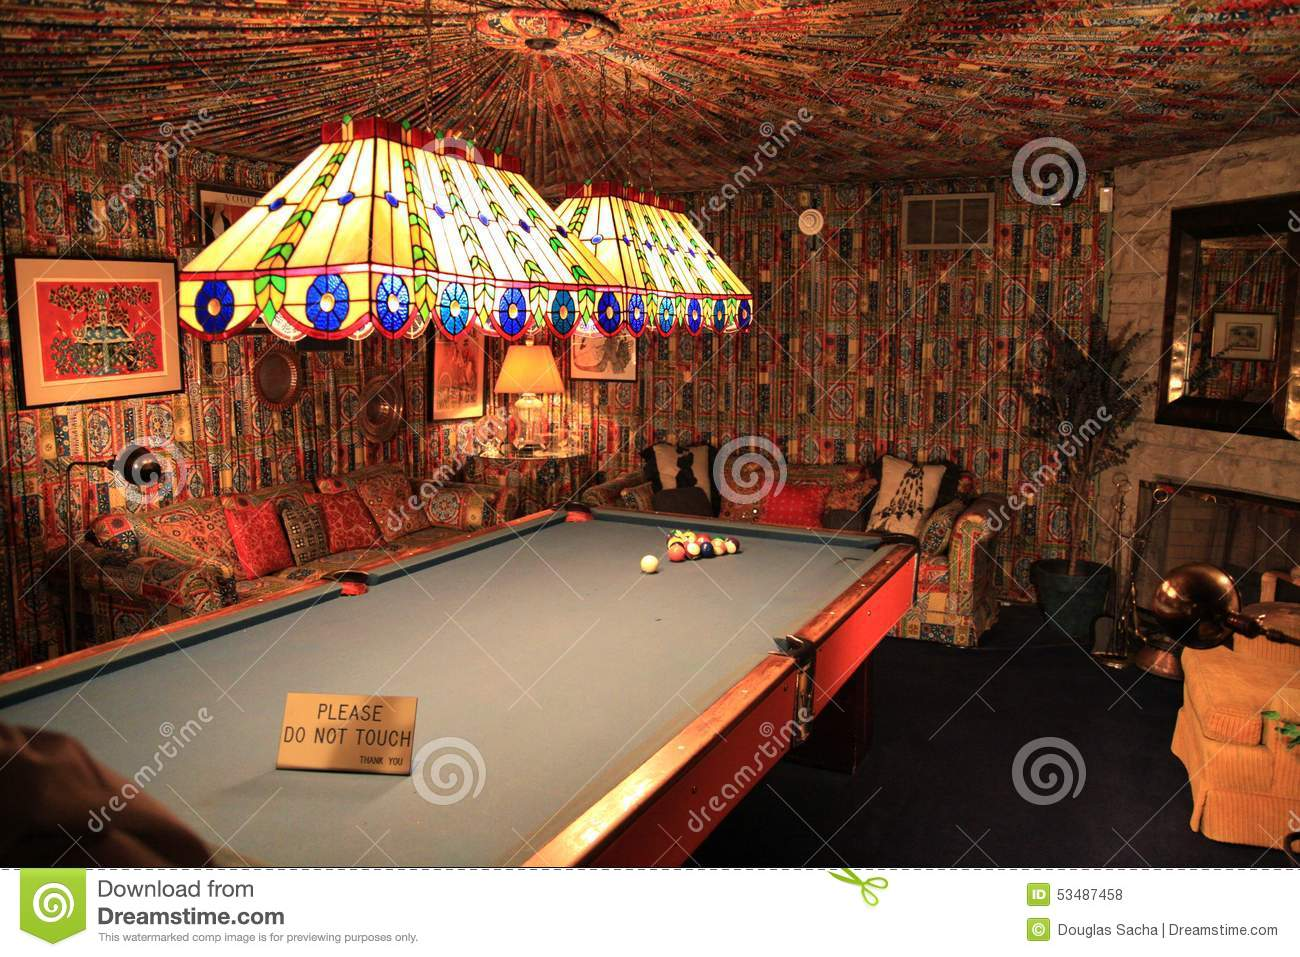 Billiards room at Elvis Presley's Graceland